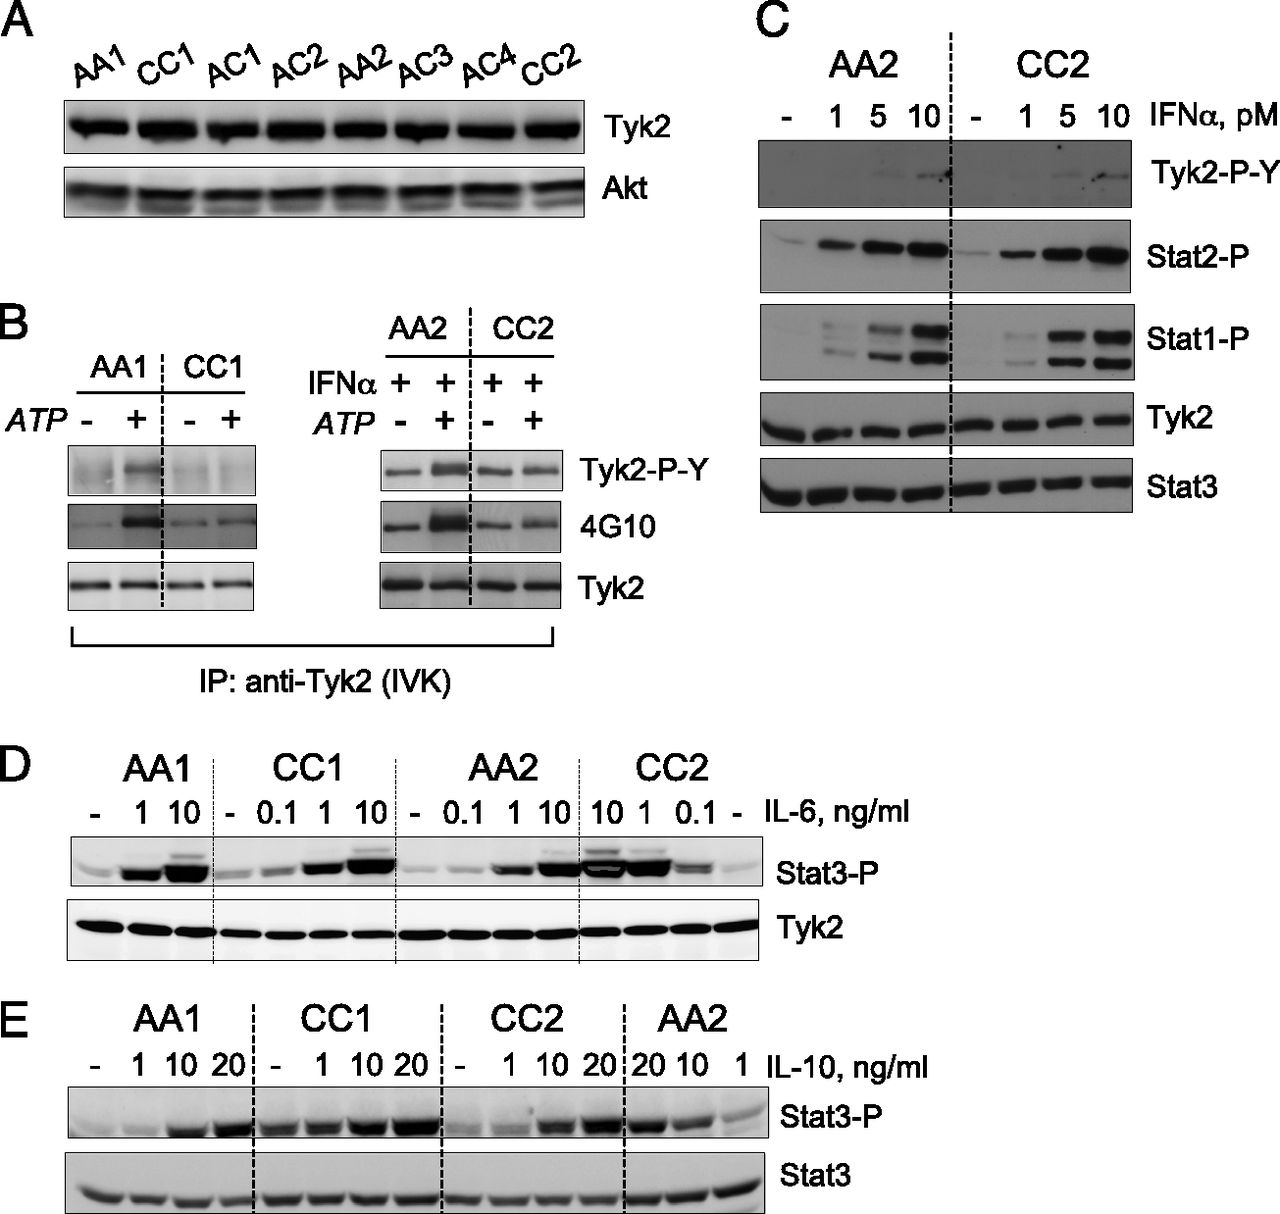 Two Rare Disease-Associated Tyk2 Variants Are Catalytically